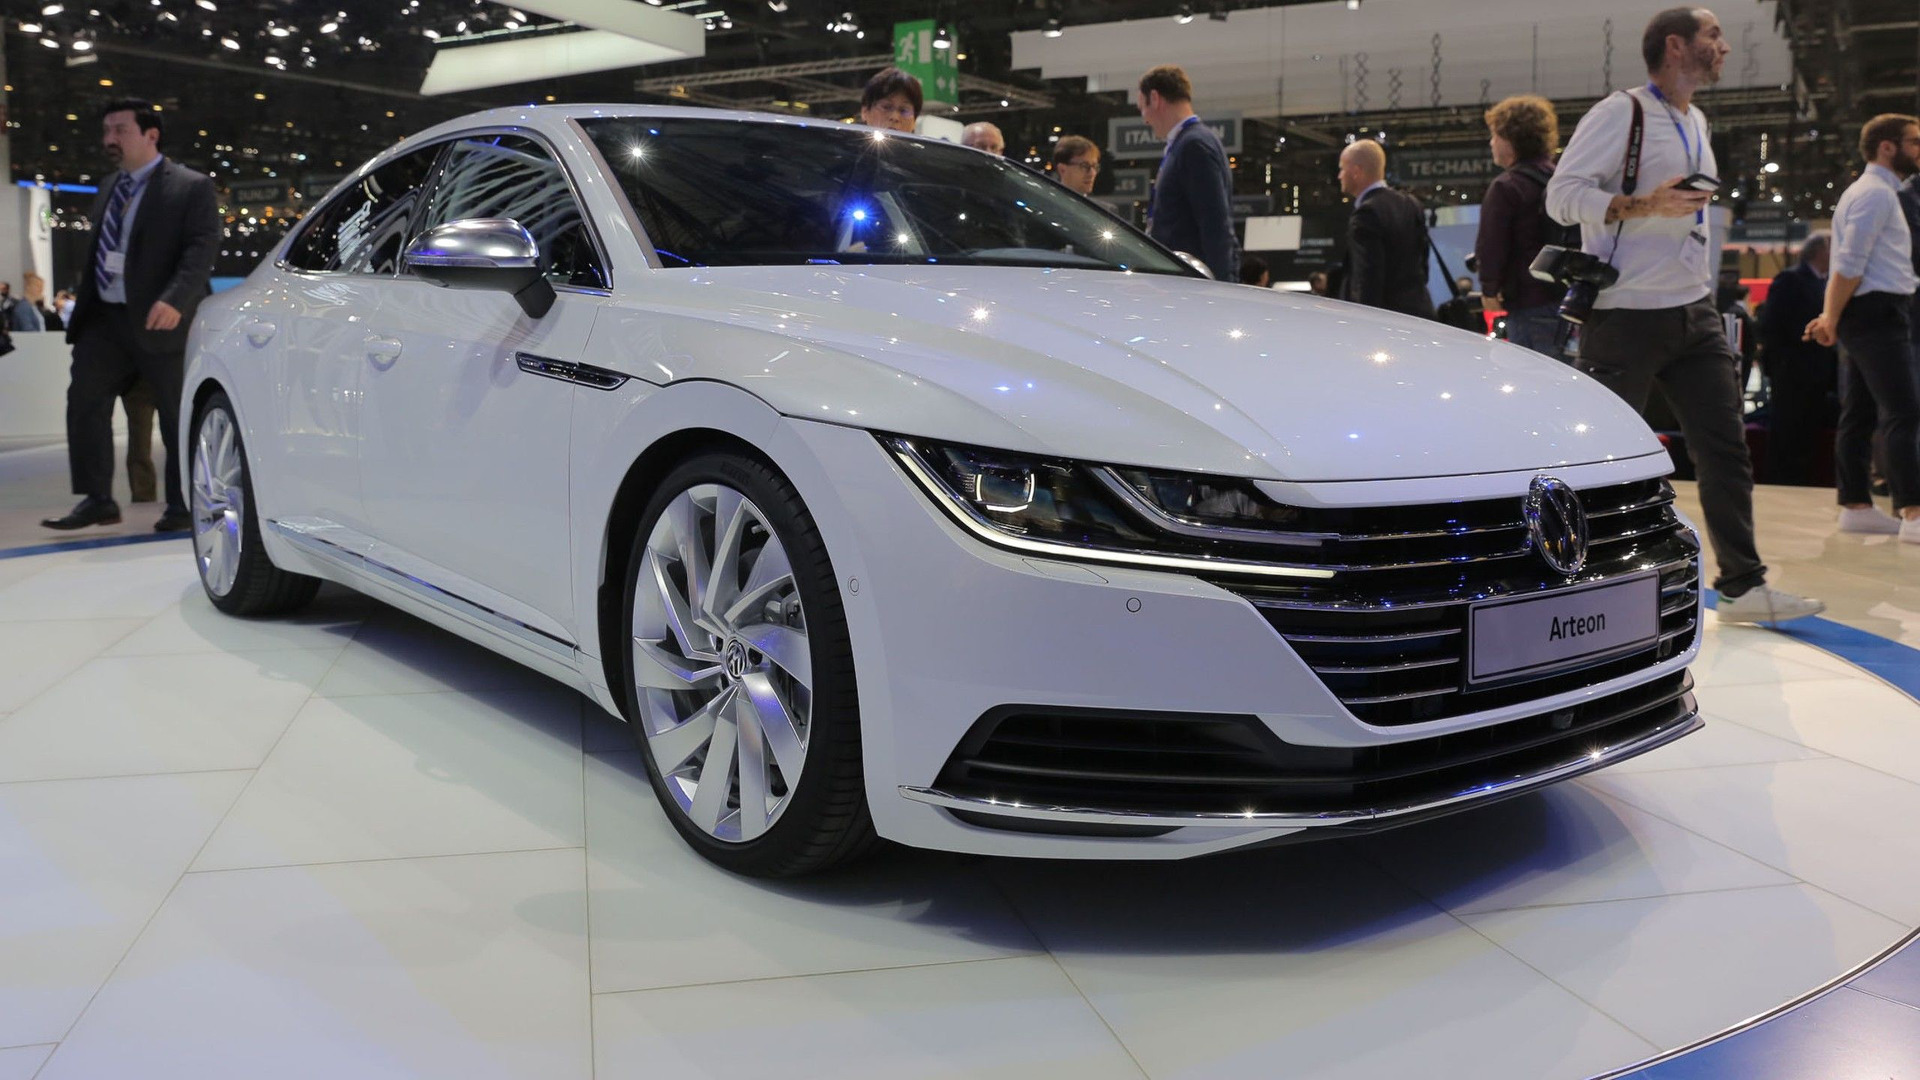 Vw Arteon Can Now Be Ordered In Germany